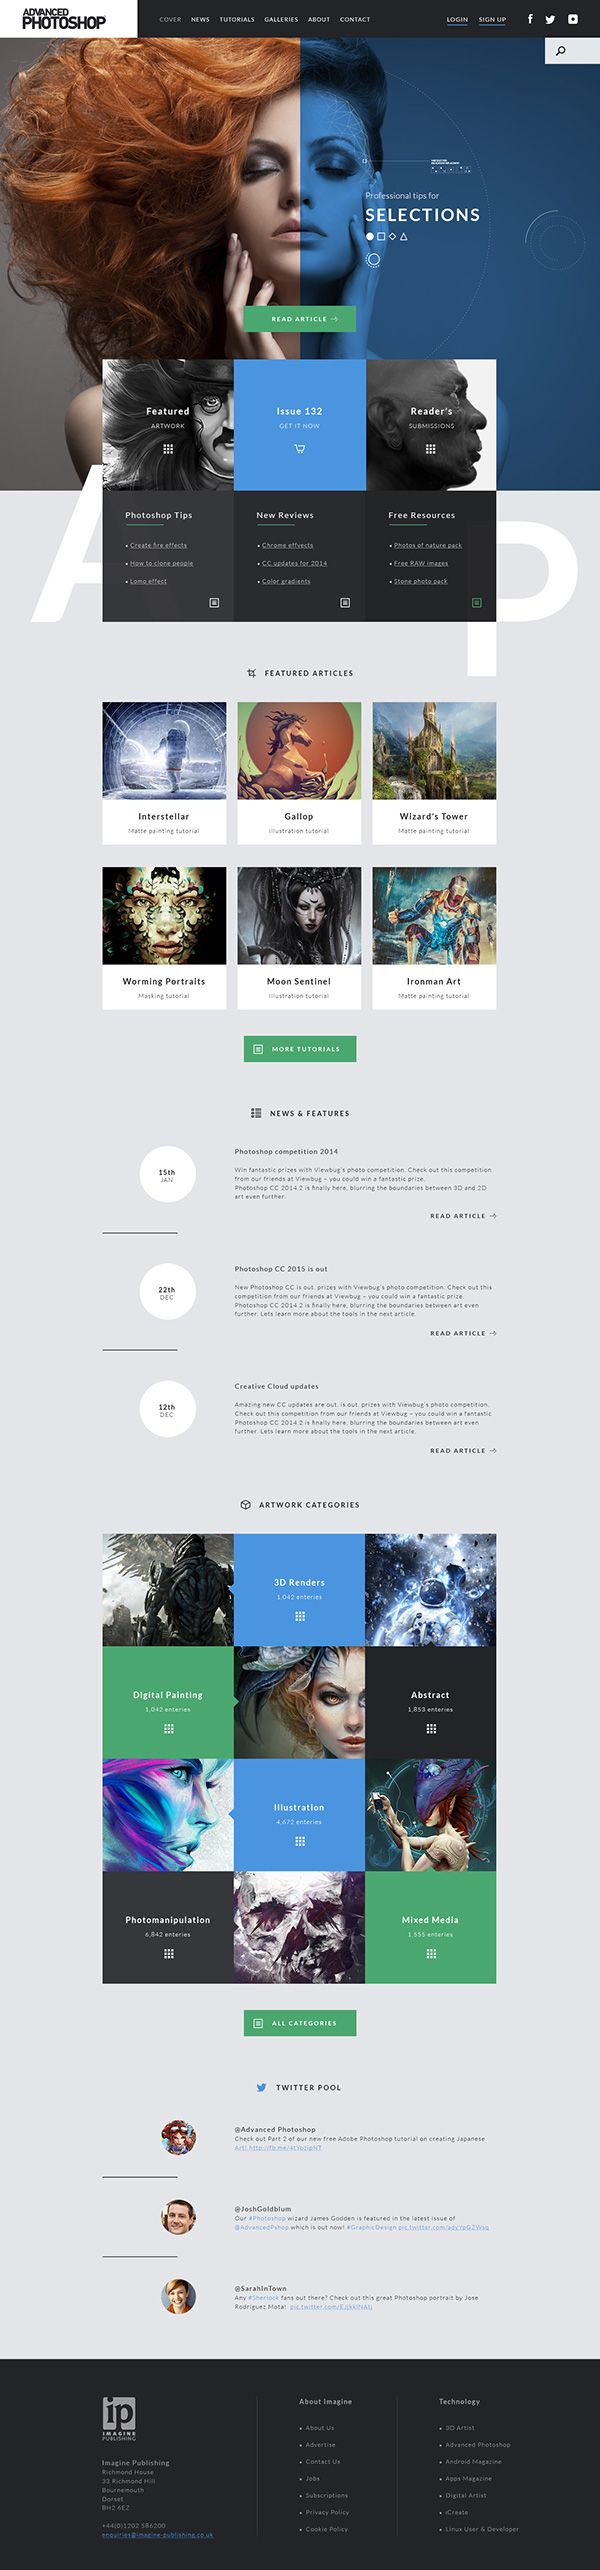 Advanced Photoshop UI/UX, Web Design